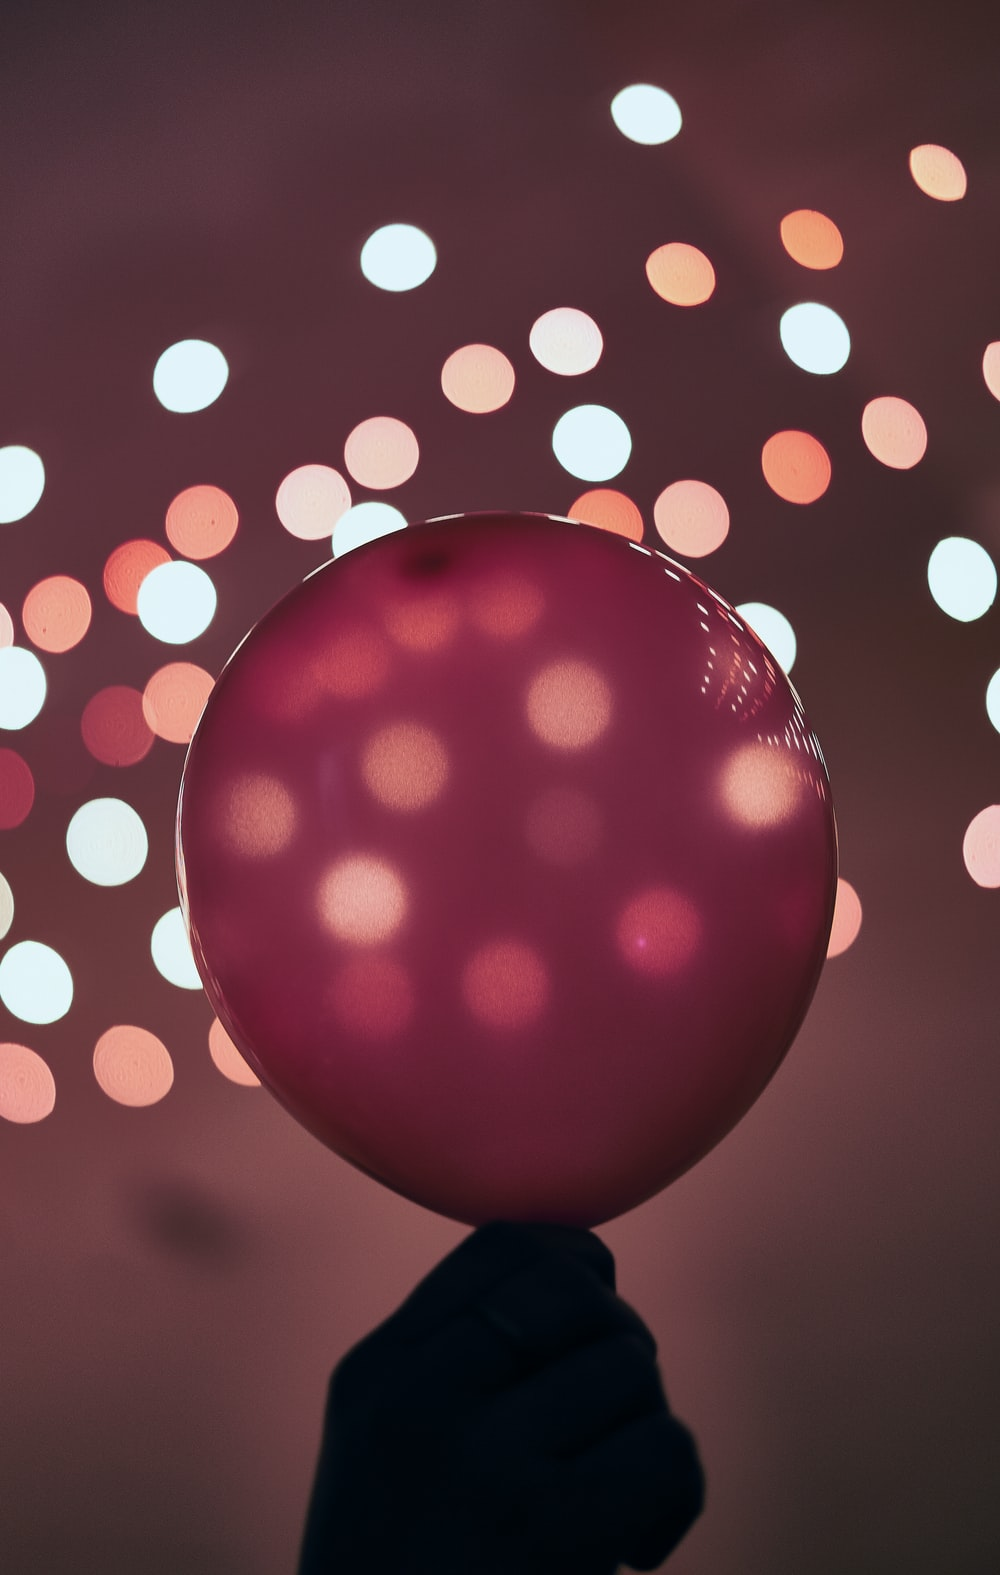 red and white polka dot ball